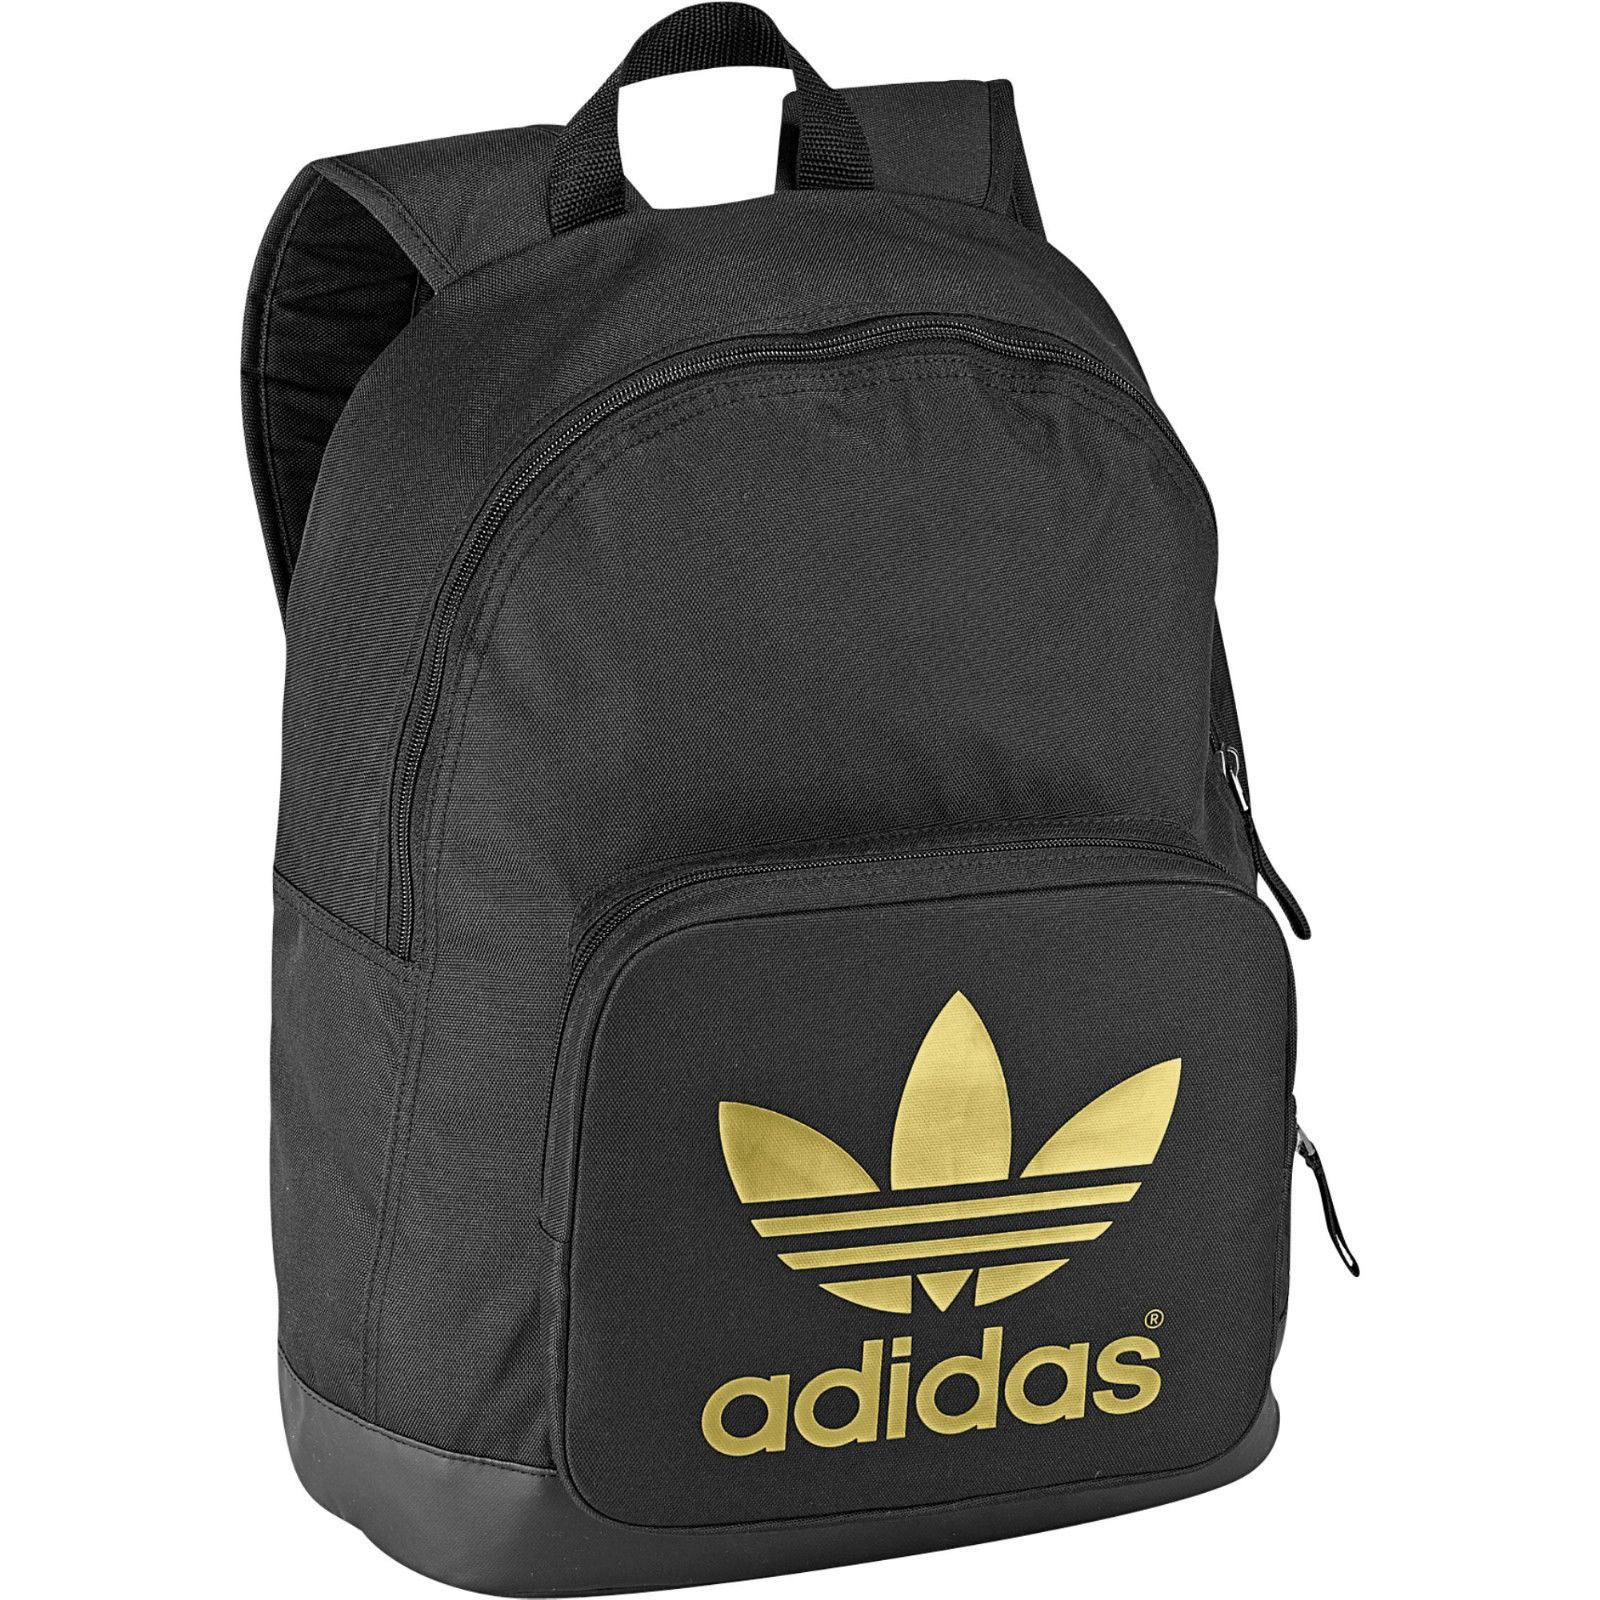 c5d410d1a9 Adidas Originals Backpacks Mens Boys Girls Adidas School Backbags Rucksacks